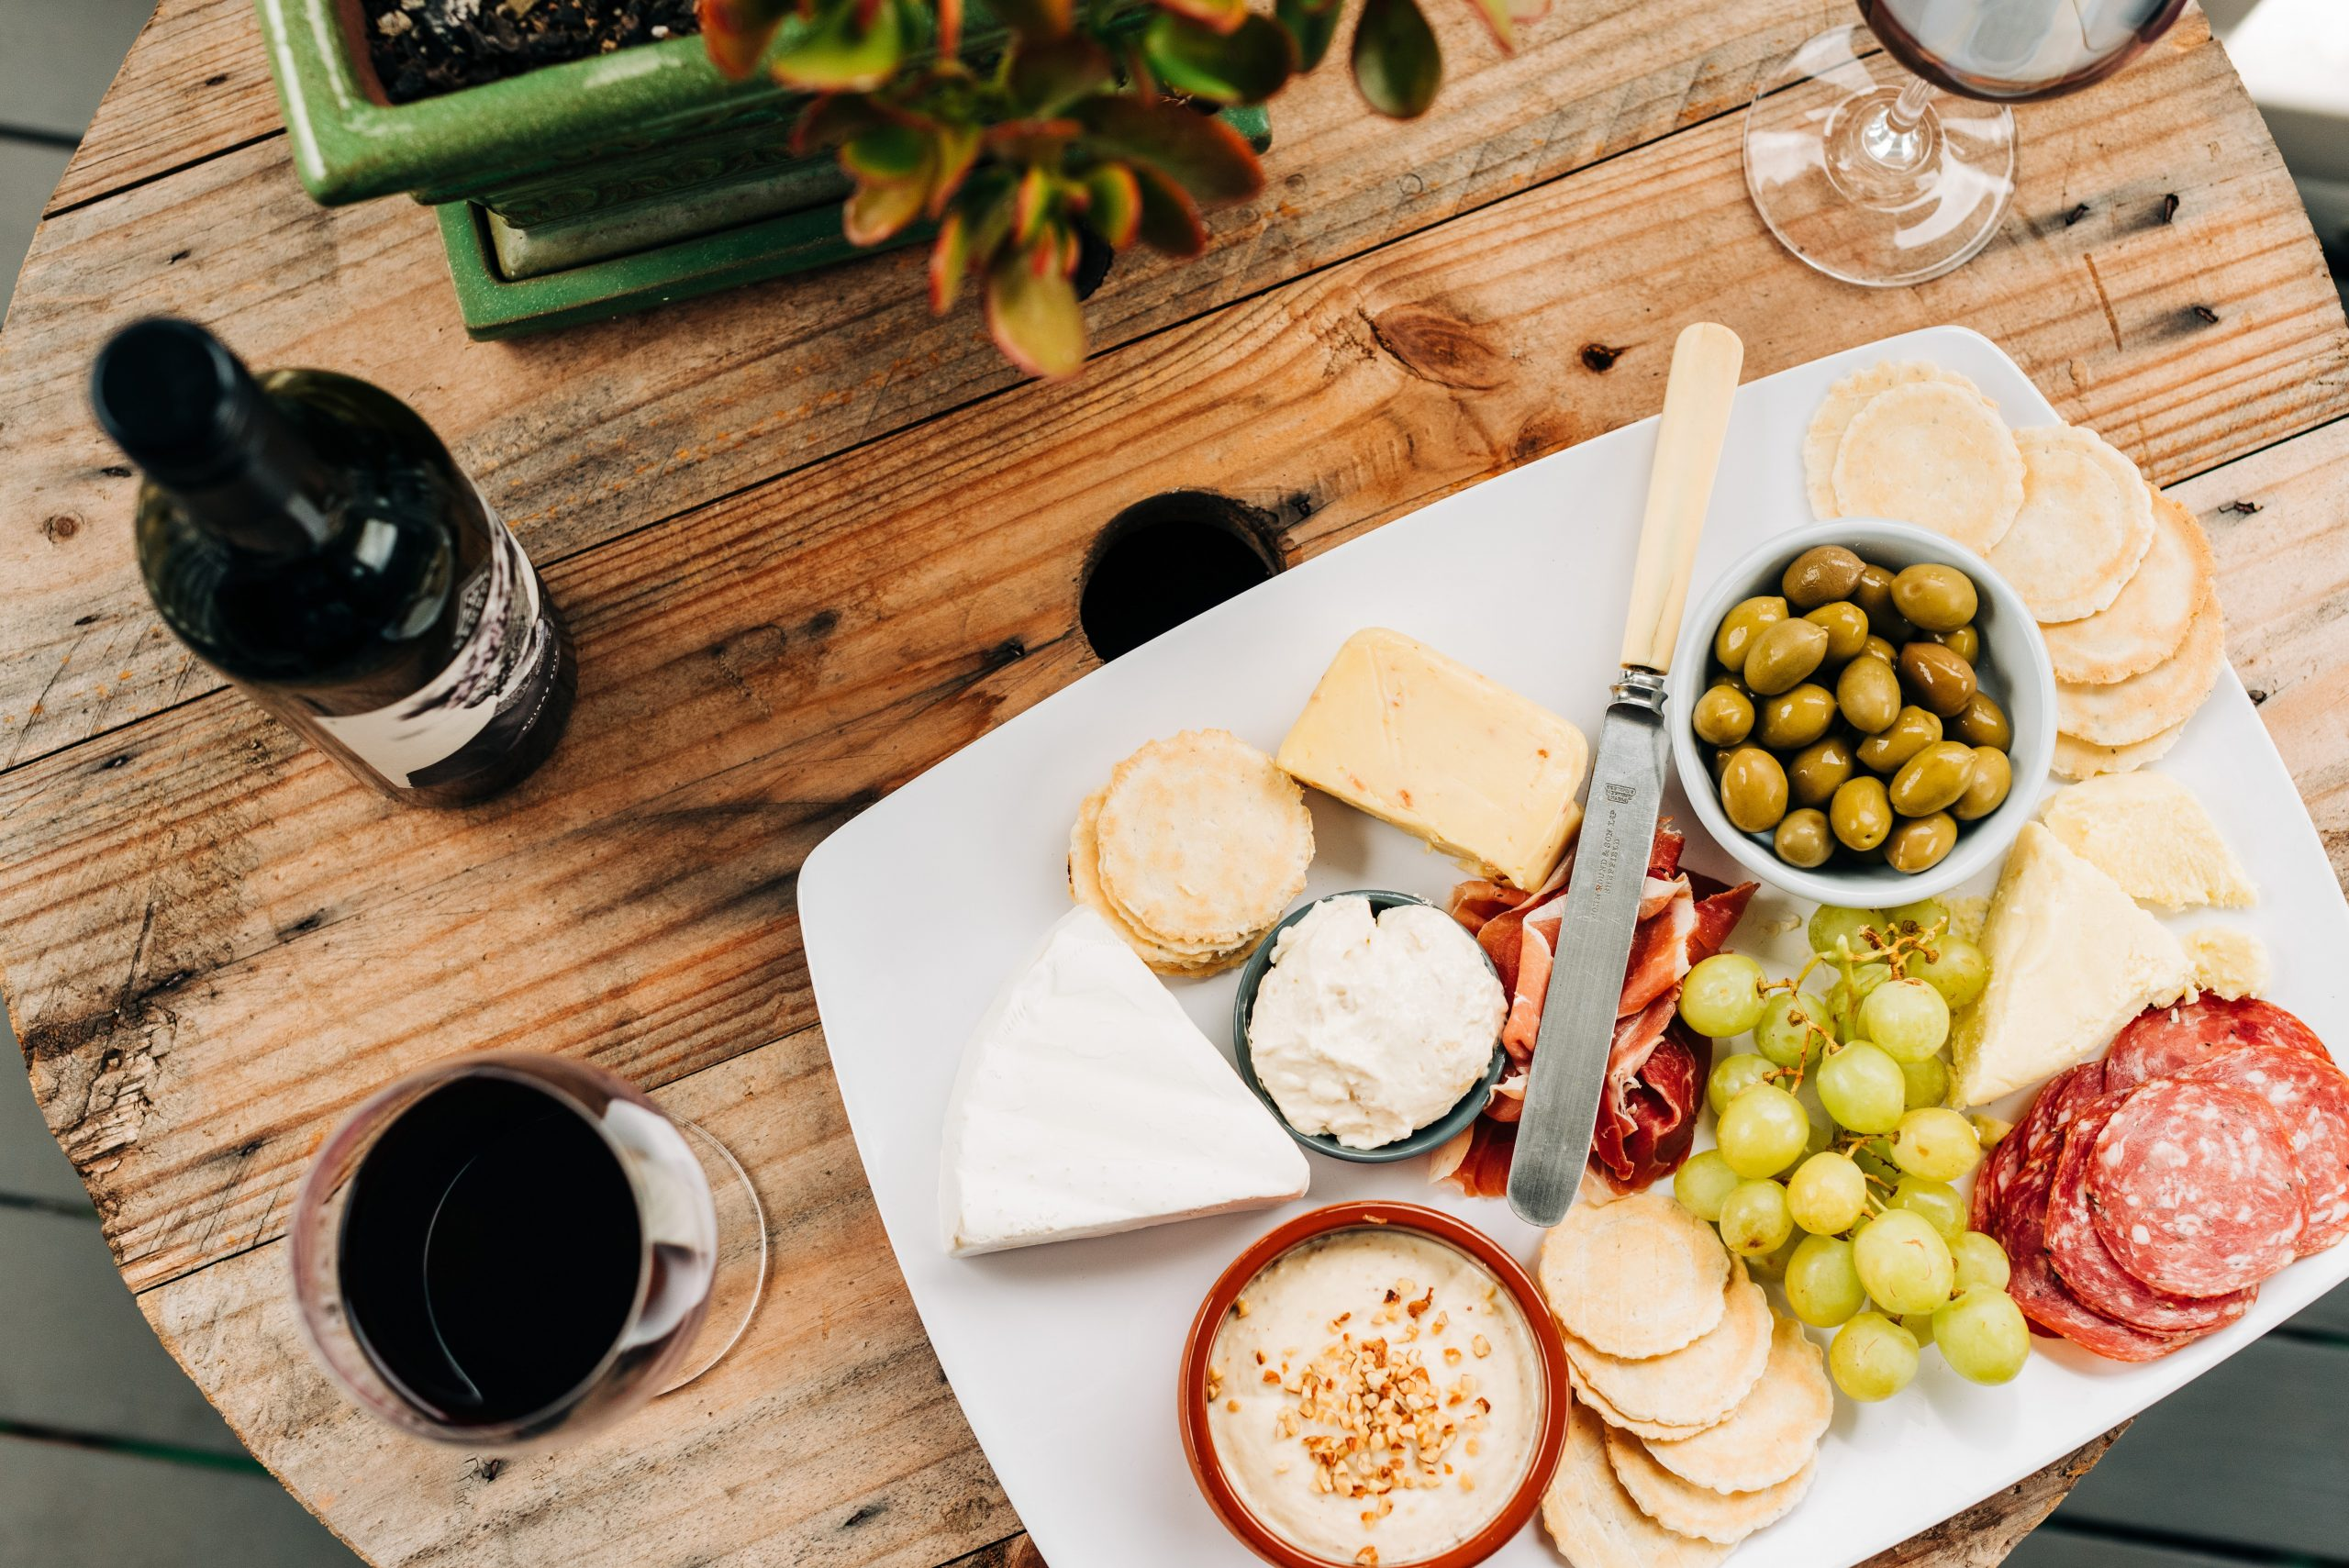 Charcuterie board with meats, olives, cheeses, and wine